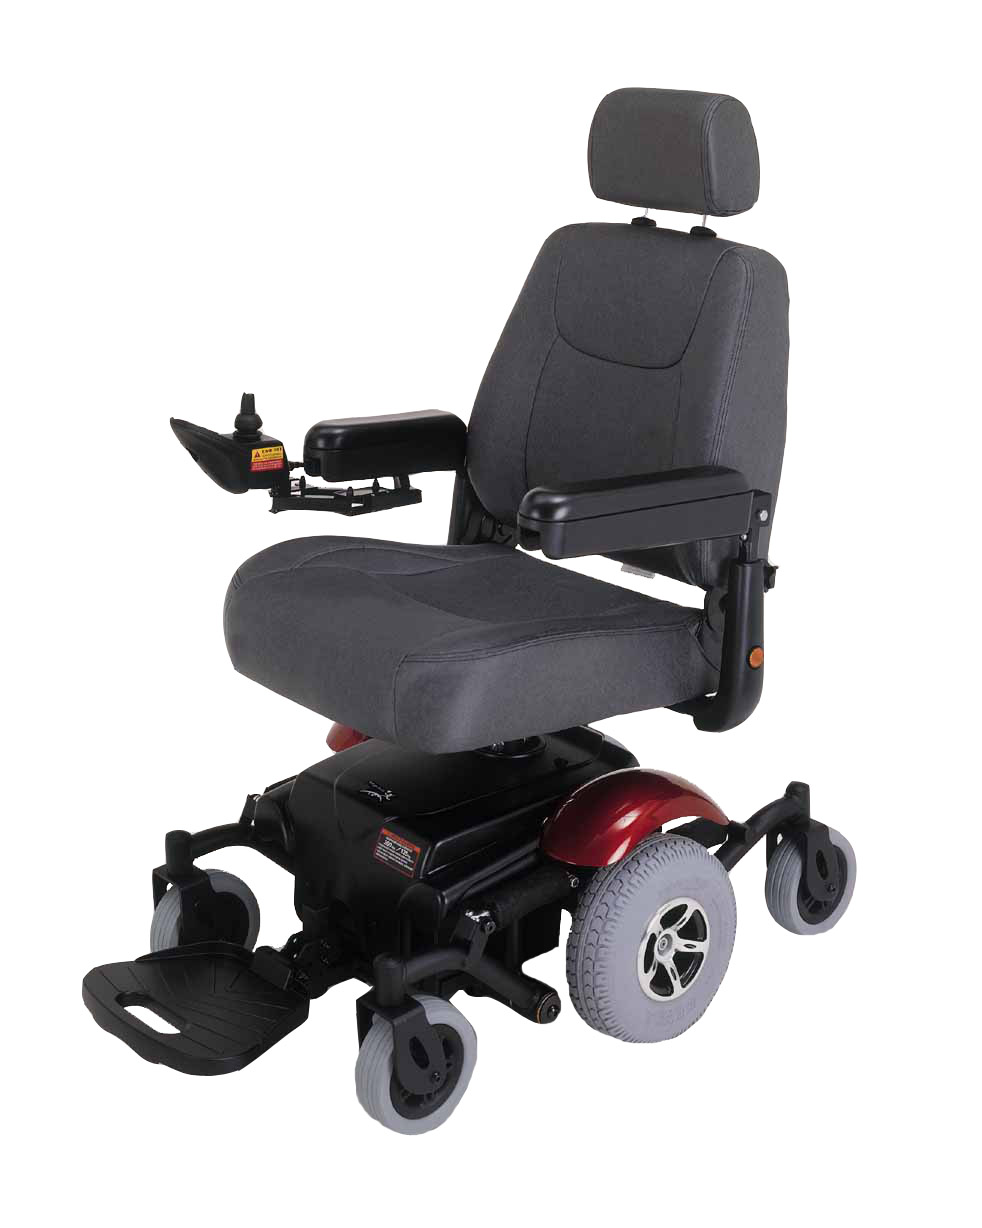 electric wheelchair for free, electric wheelchair motor go kart, jazzy electric wheelchair parts, electric wheelchair battery specs